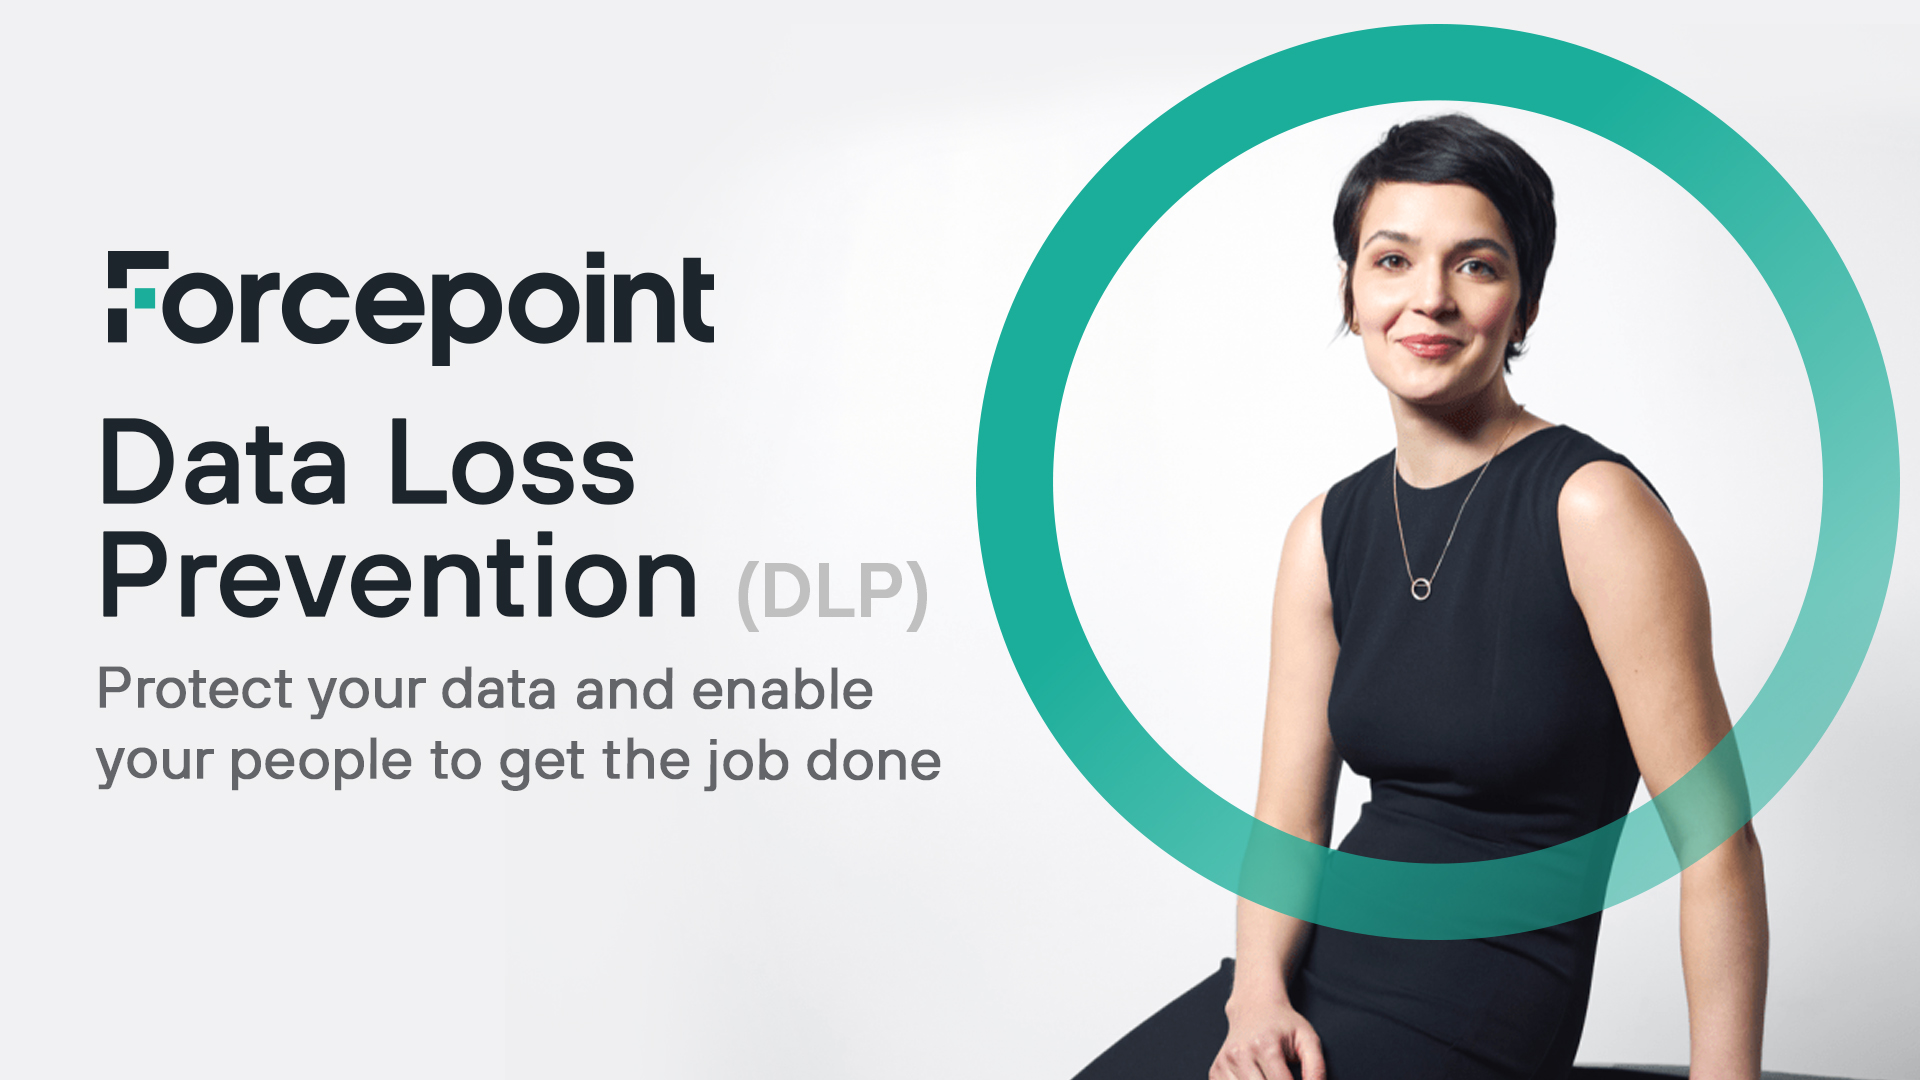 Forcepoint Data Loss Prevention